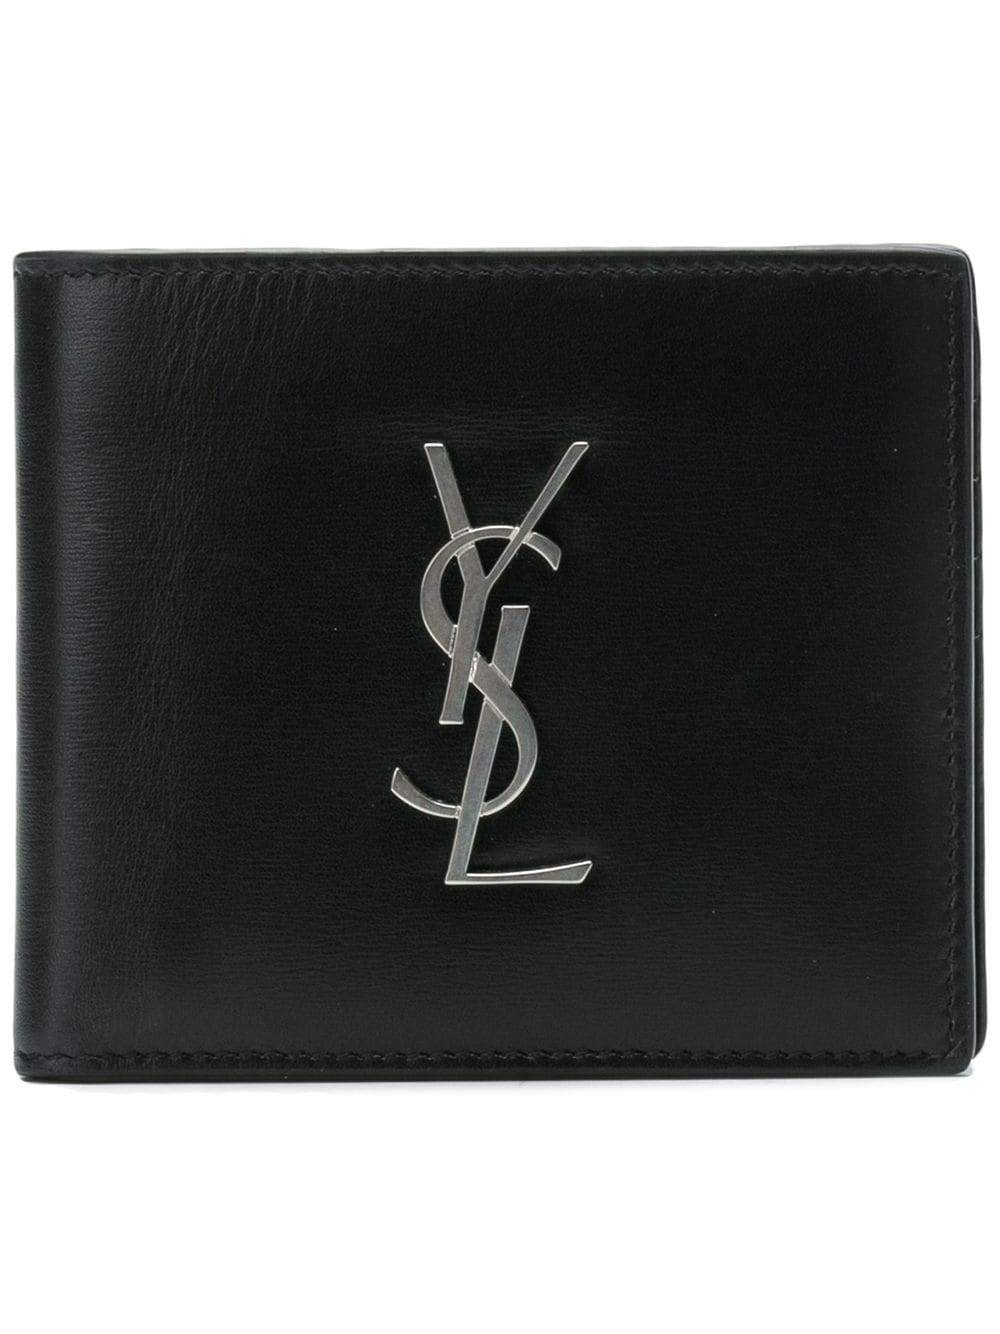 Black Ultrasoft Monogram Wallet